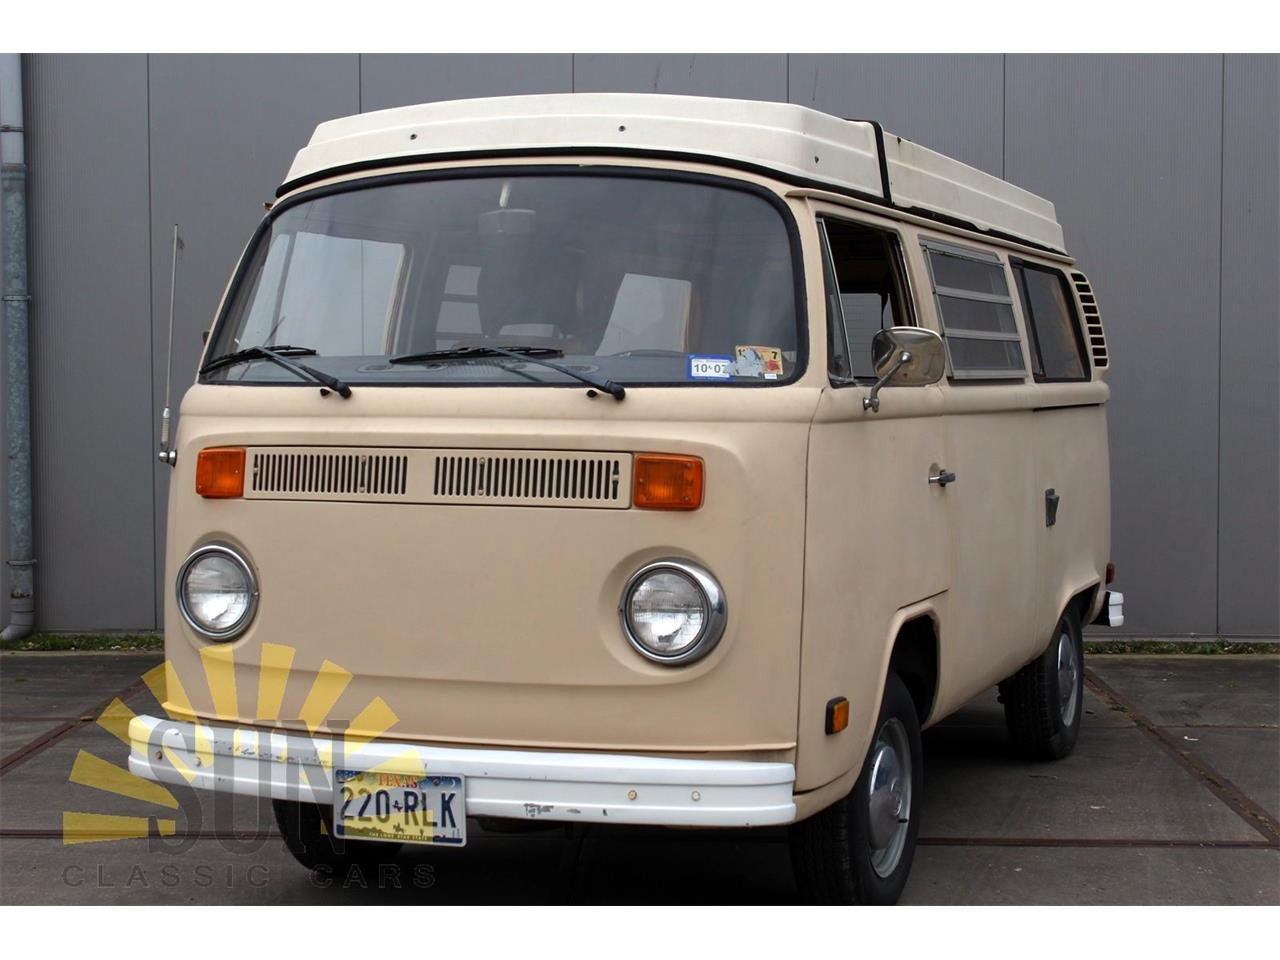 Large Picture of '77 Bus - $20,368.00 - MN3P